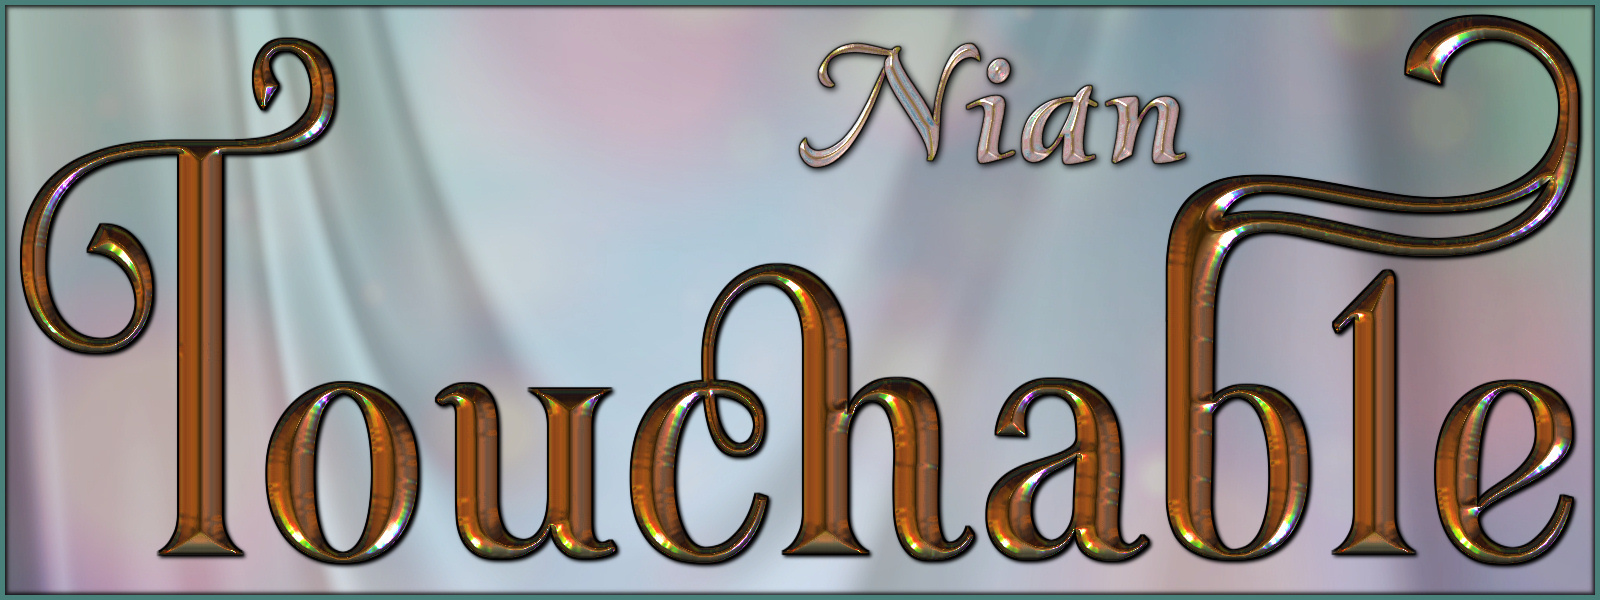 Touchable Nian Poser by -Wolfie-